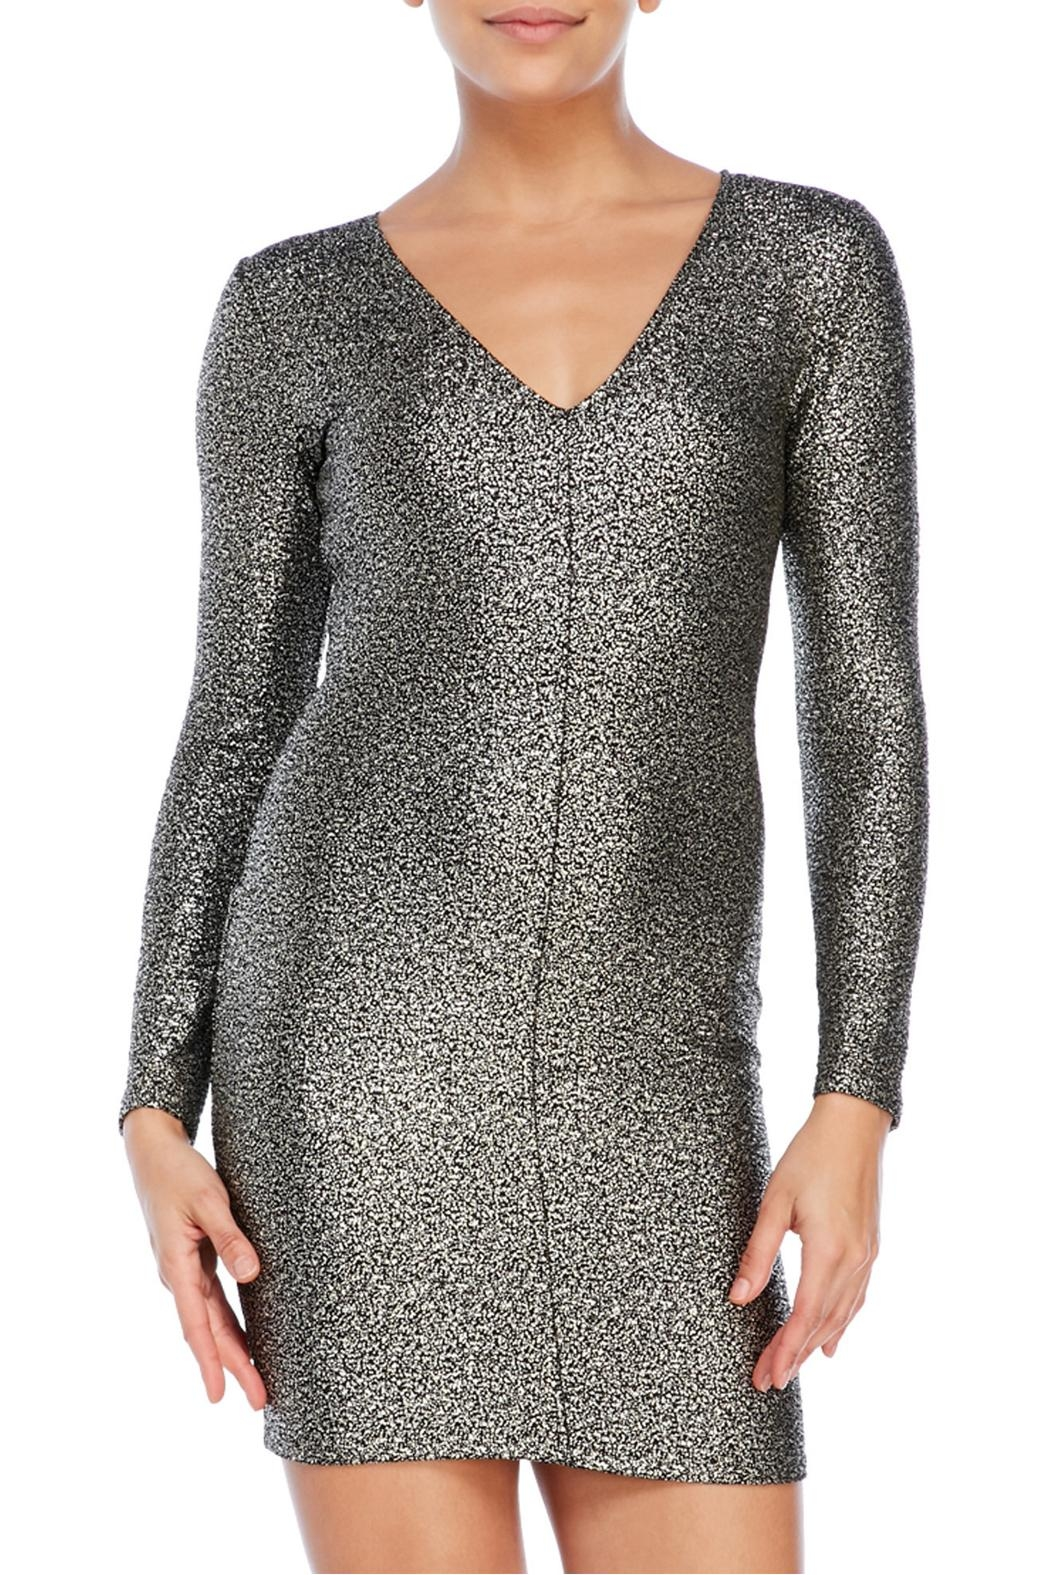 House of Atelier Metallic Bodycon Dress - Front Full Image